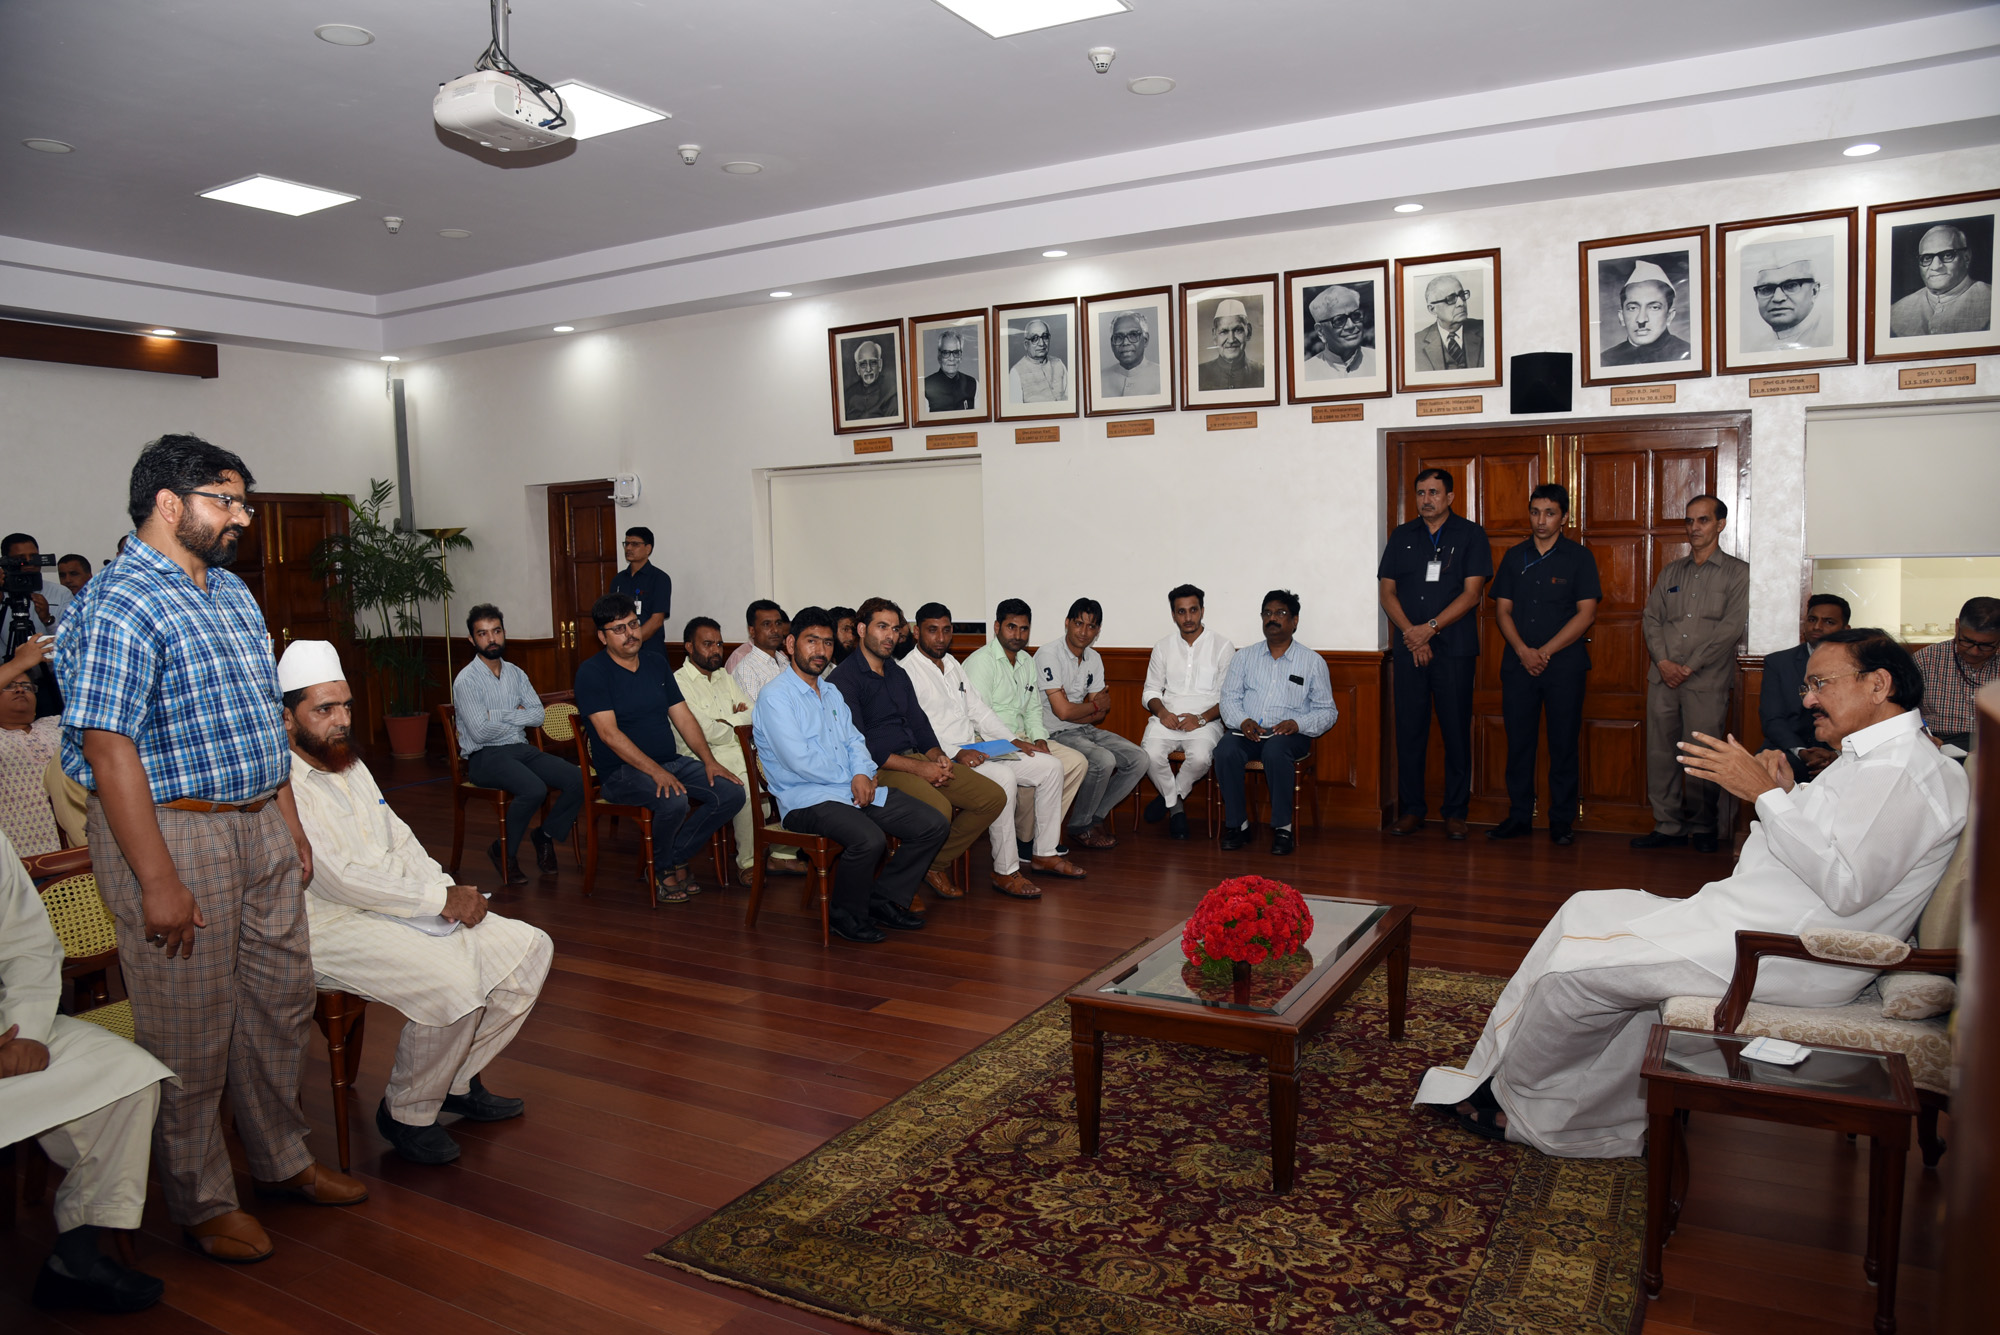 The Vice President, Shri M. Venkaiah Naidu interacting with the Sarpanches from Jammu and Kashmir, in New Delhi on September 10. 2019.